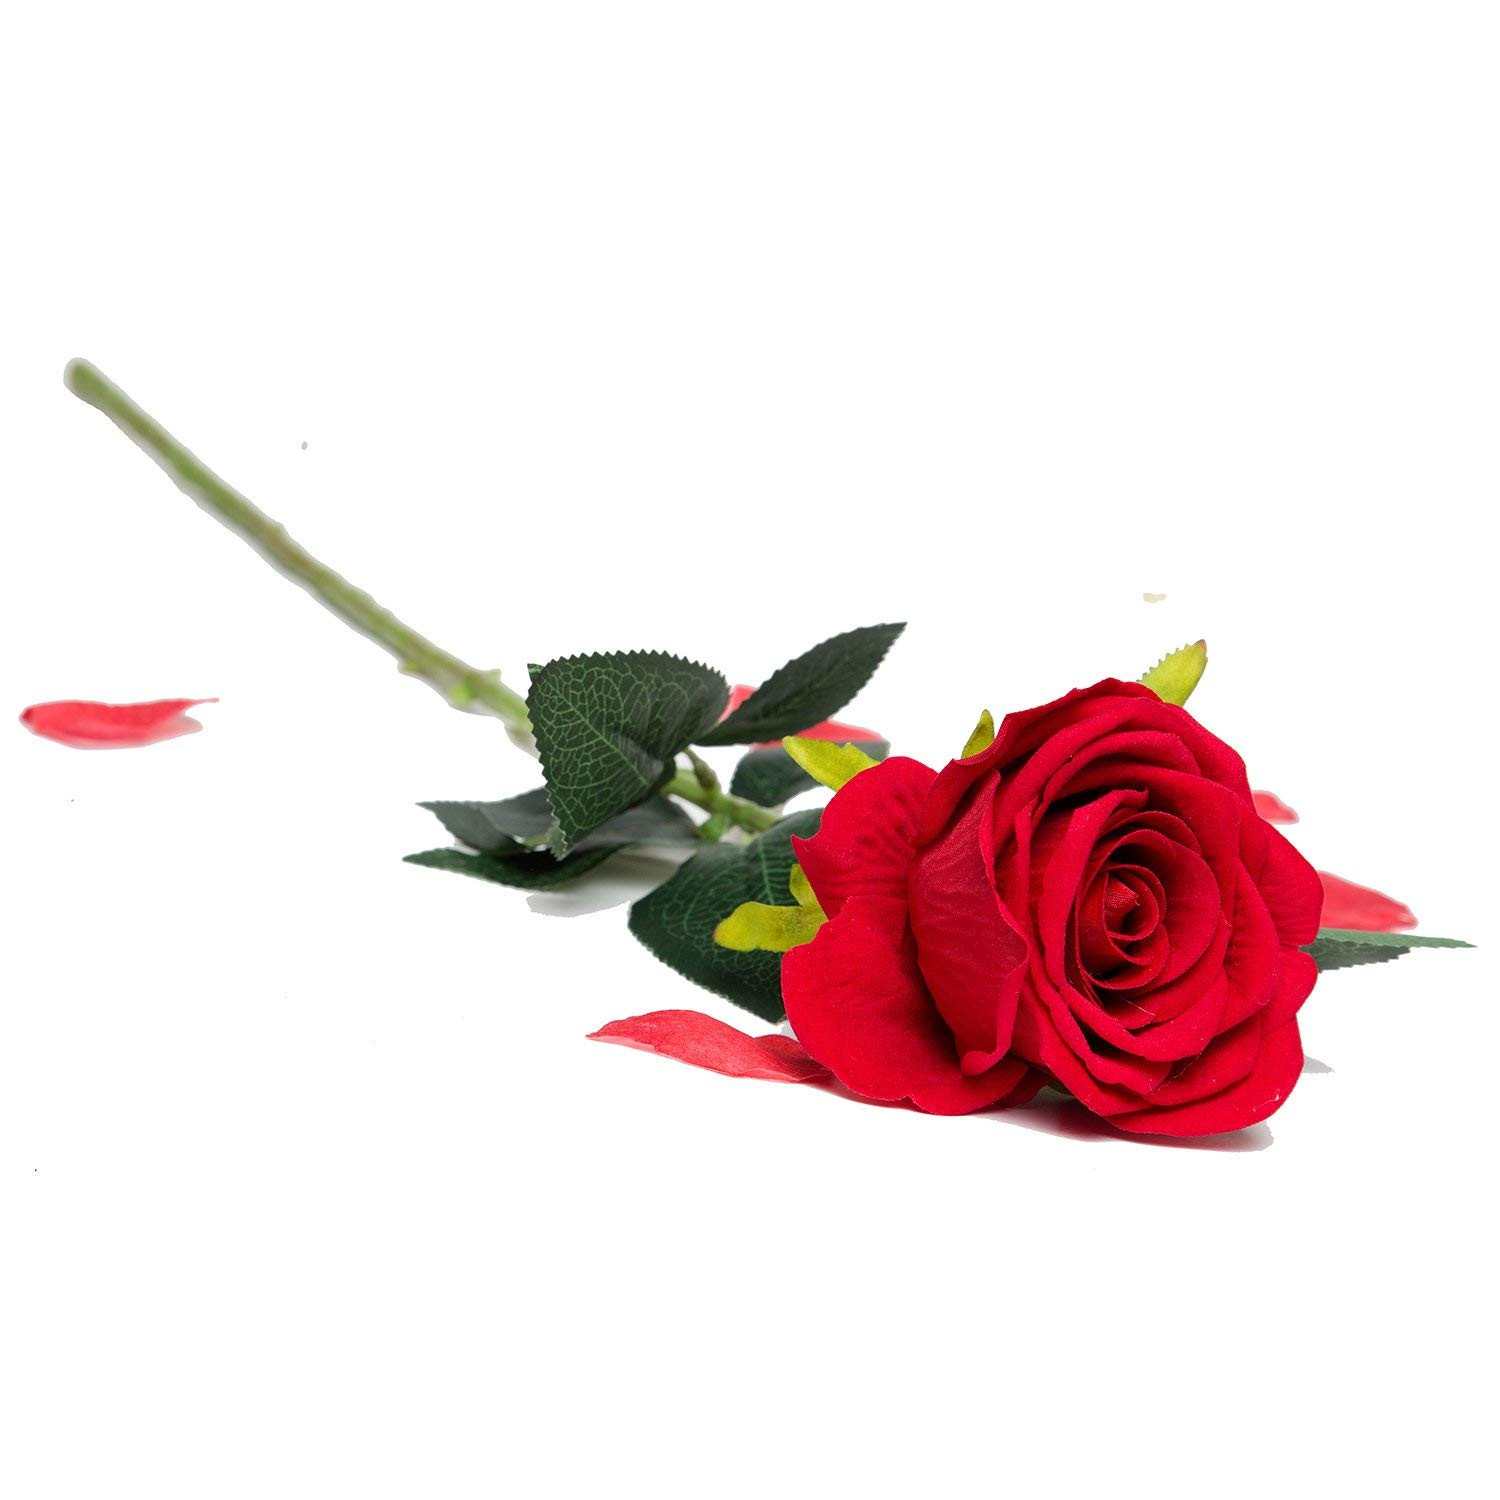 Single Rose Glass Vase Of Amazon Com Artificial Silk Roses Red Velvet 30 Long Stemmed 1 Pertaining to Amazon Com Artificial Silk Roses Red Velvet 30 Long Stemmed 1 Dozen Fake Flowers for Bouquets Weddings Valentines by Royal Imports Home Kitchen